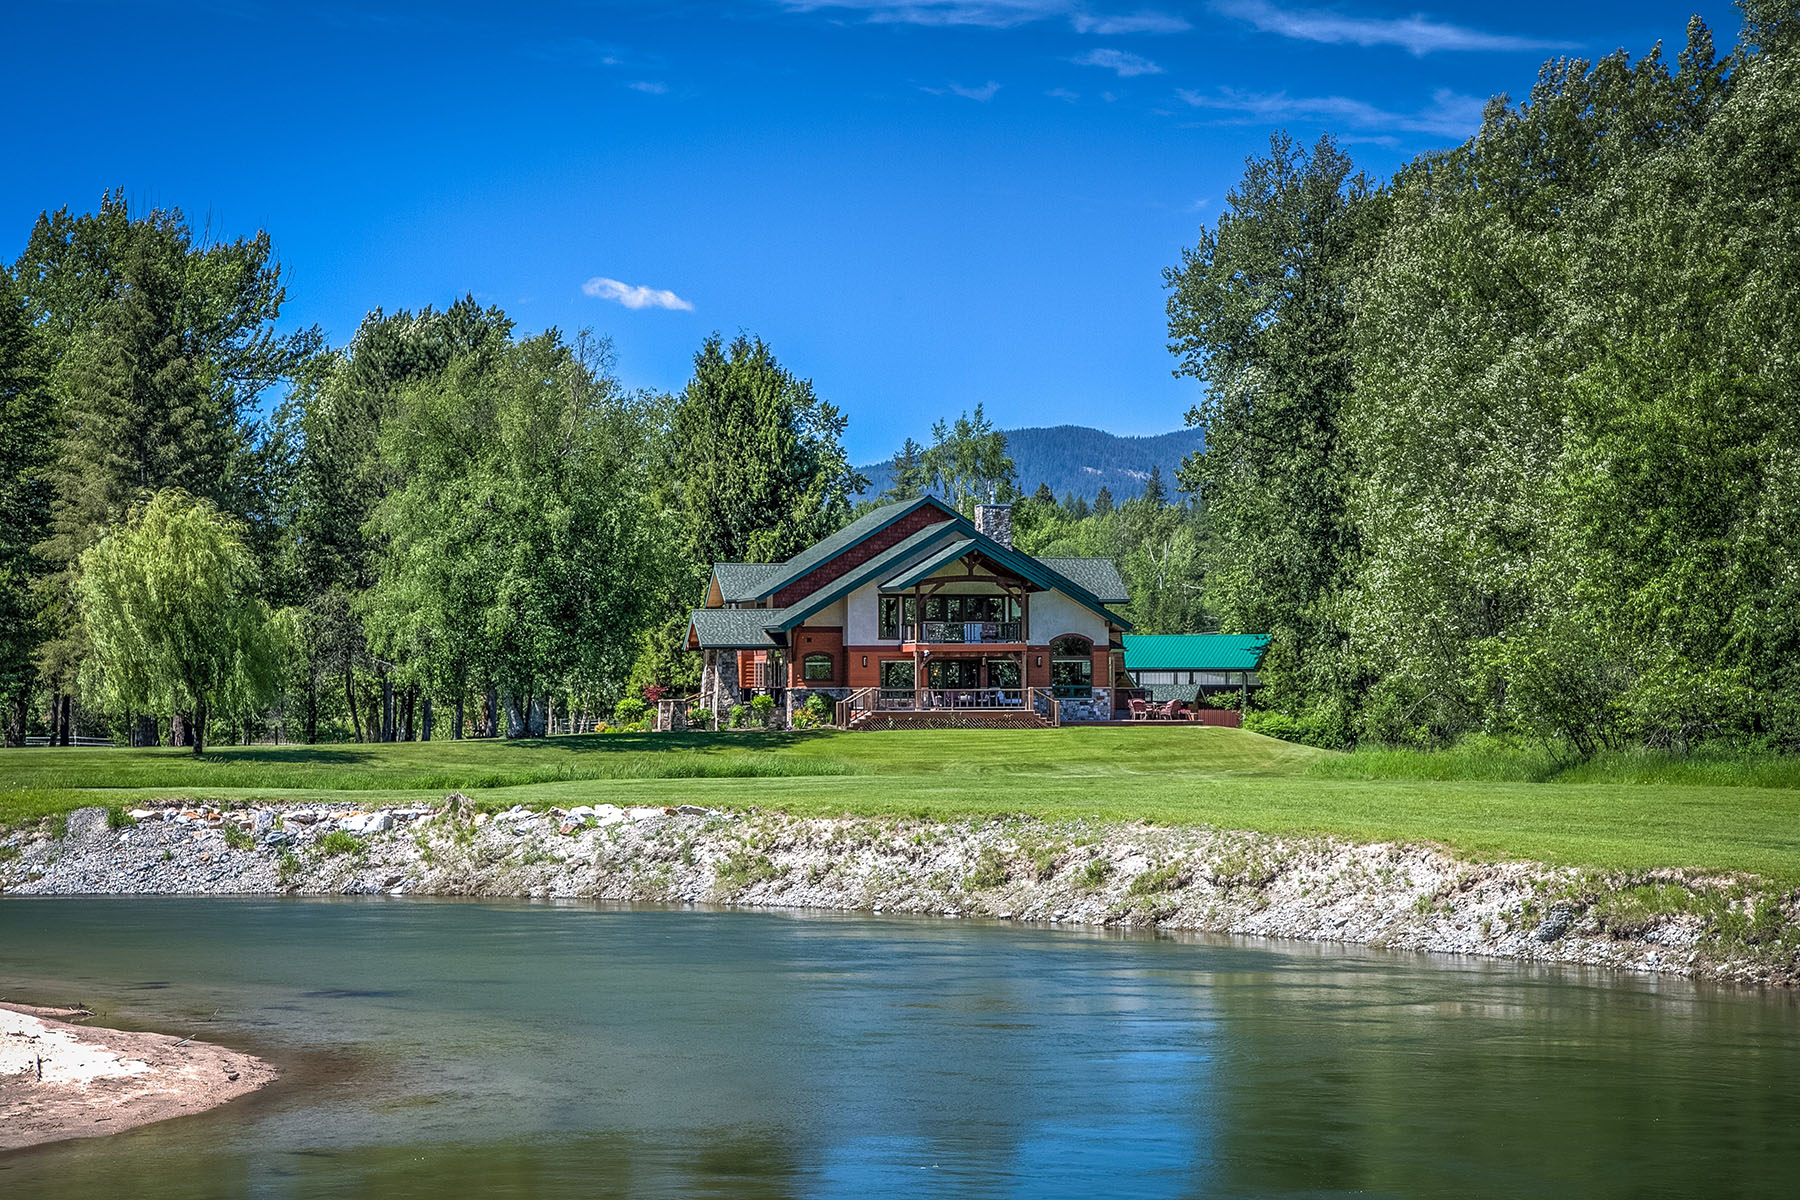 Single Family Home for Sale at Riverfront Equestrian Estate 185 Selkirk View Road Sandpoint, Idaho, 83864 United States